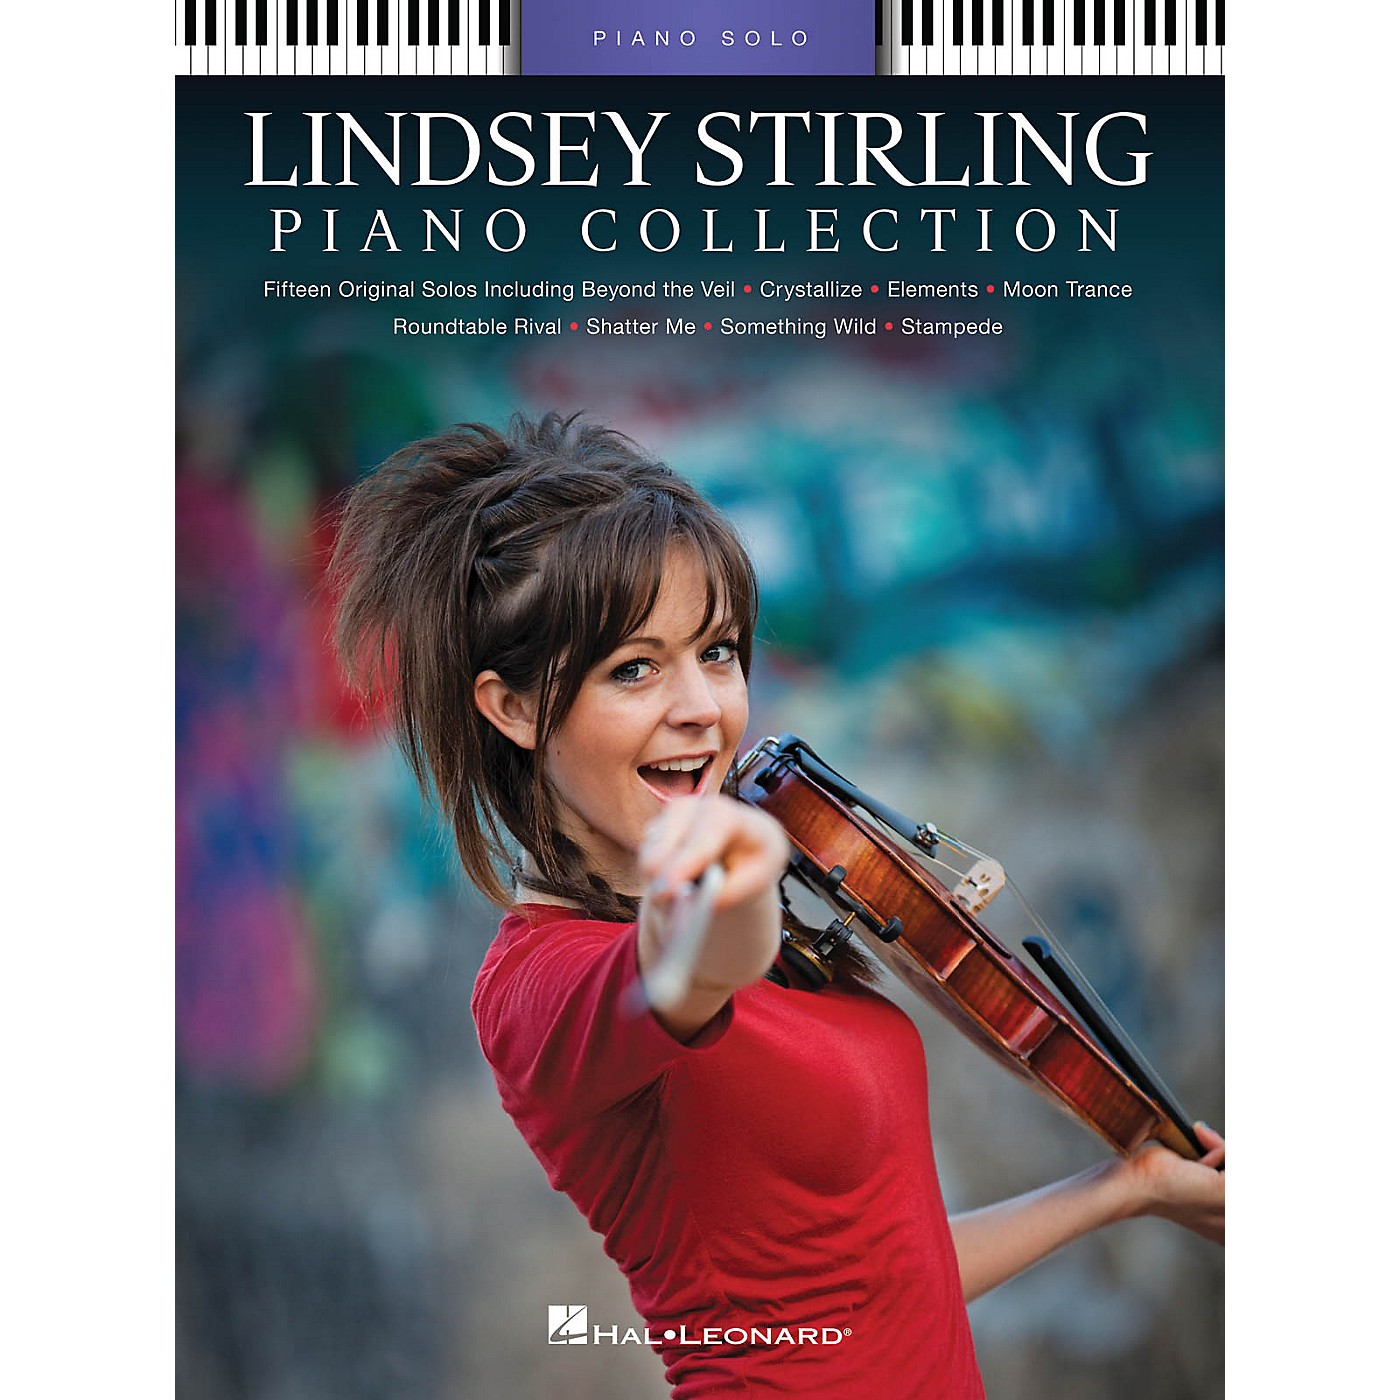 Hal Leonard Lindsey Stirling - Piano Collection Piano Solo Personality Series Softcover Performed by Lindsey Stirling thumbnail